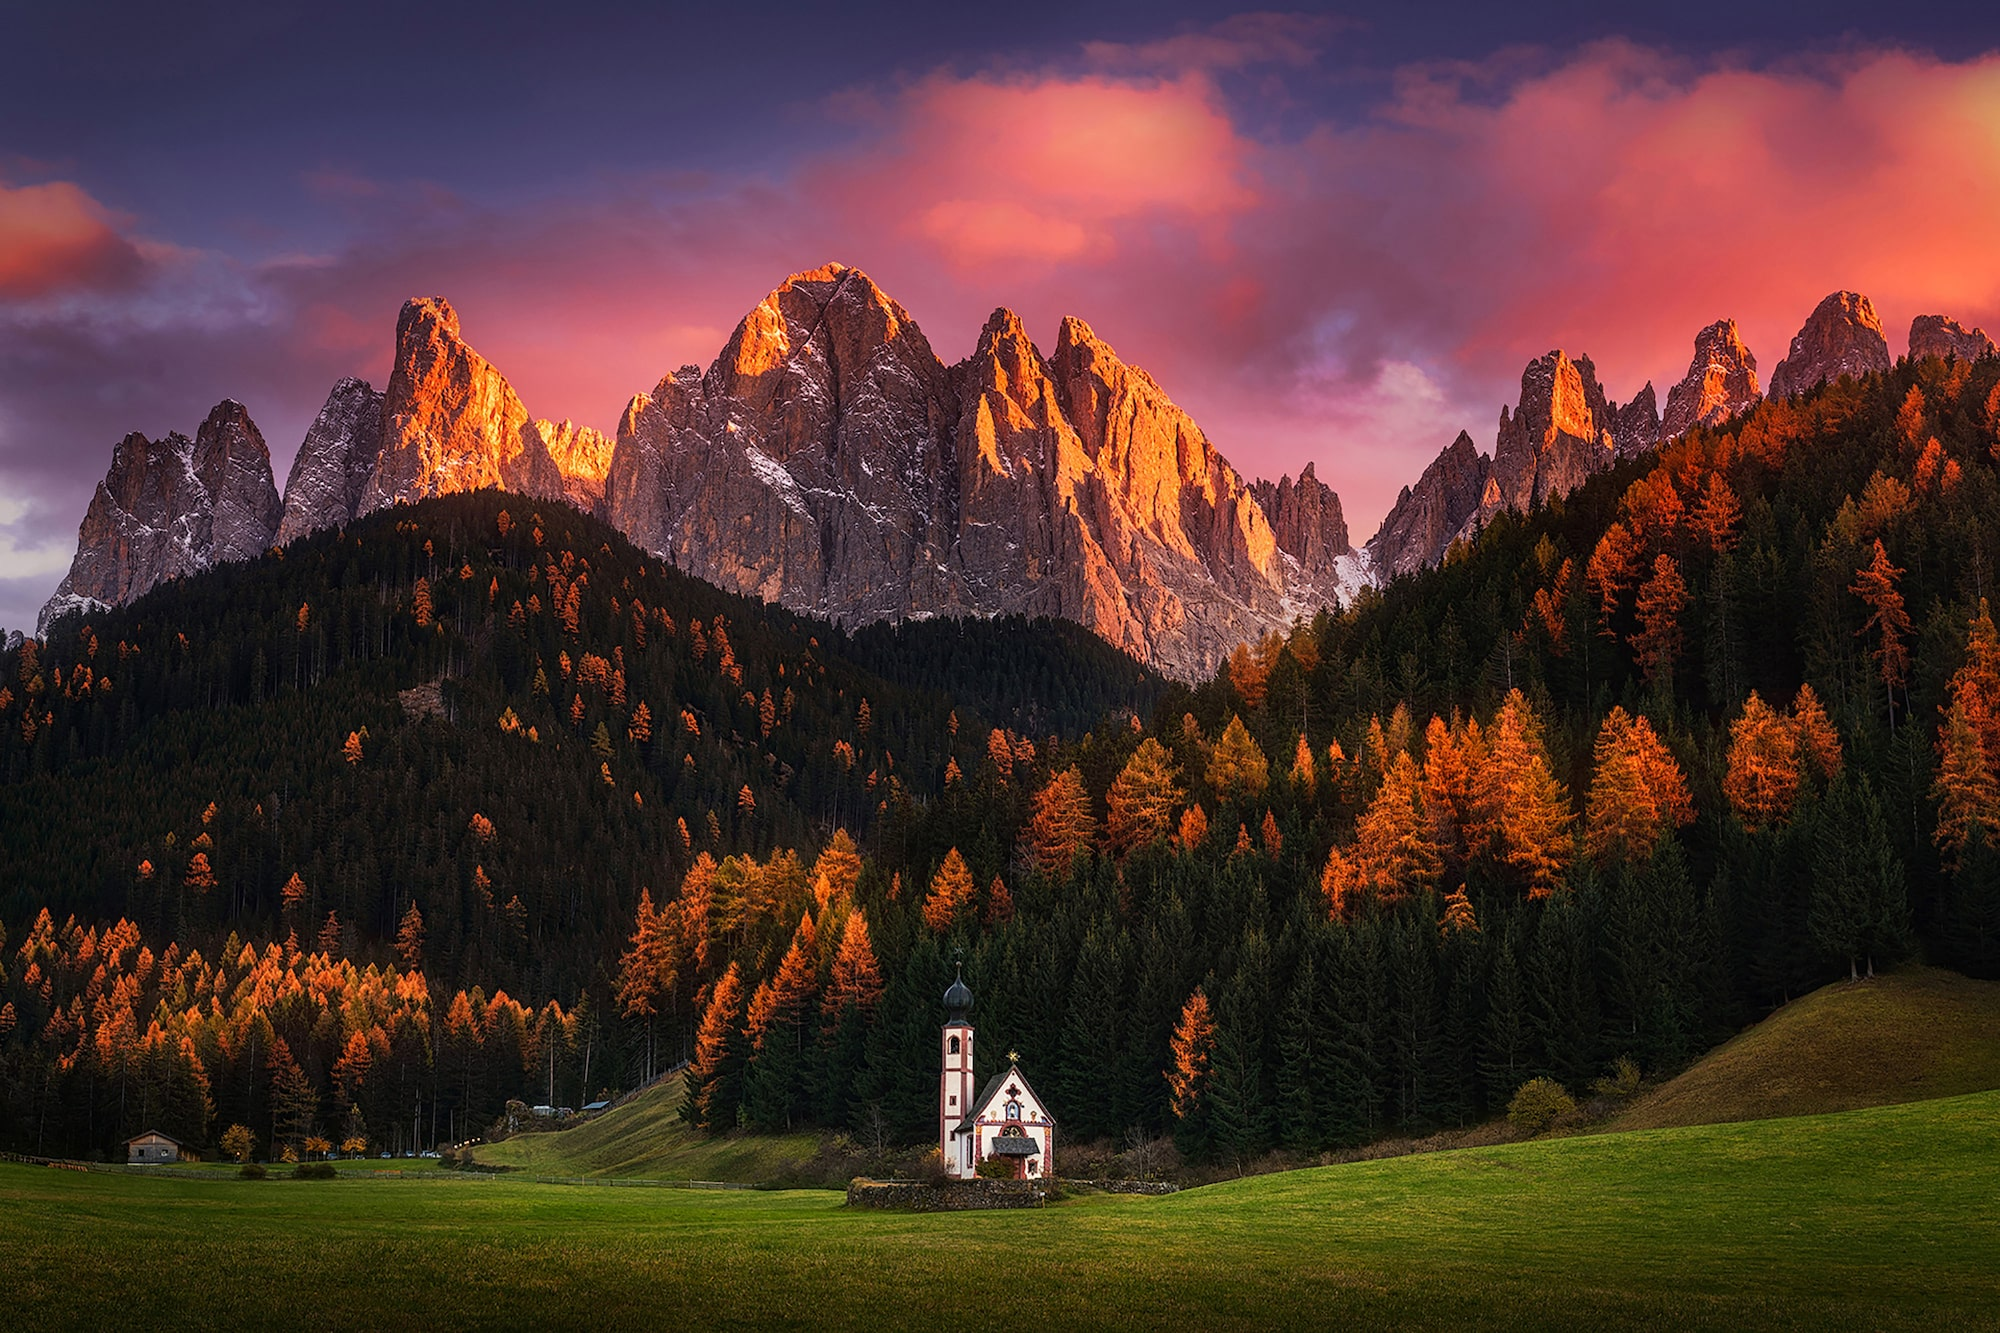 albert dros sony alpha 7RII a small church sits in the shadow of a mountain with the peaks illuminated in golden orange